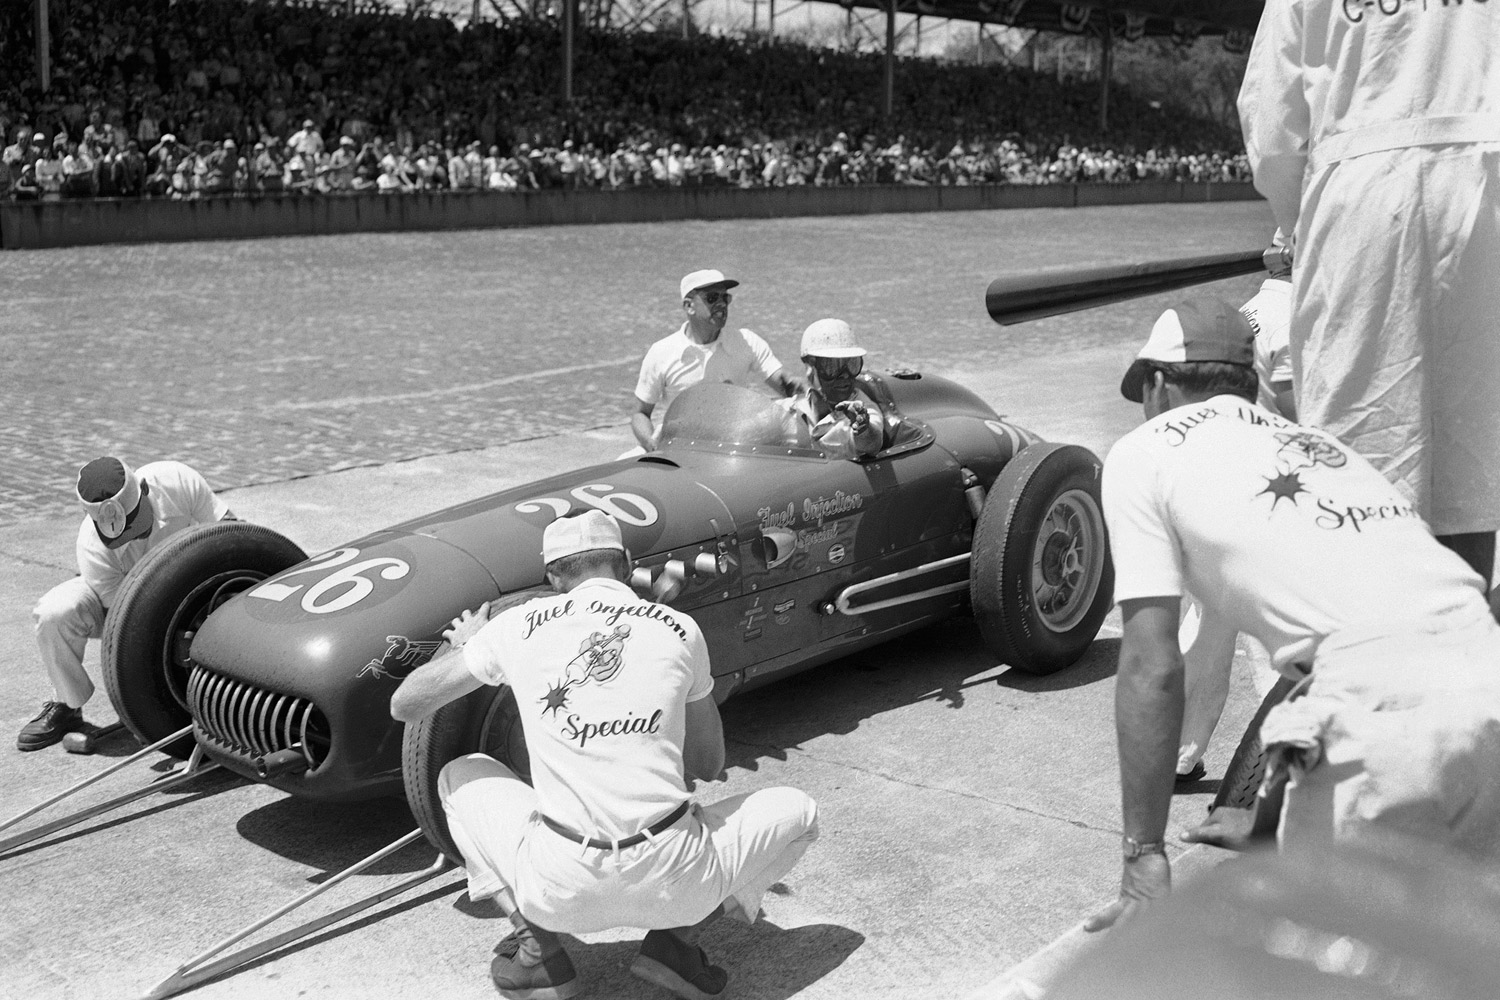 The chassis were different, but the engines remained the same. Troy Ruttman and Rodger Ward pitted a 1952 Kuzma and a '59 Watson, respectively, to tune up their Offys, while Sam Hanks, behind the wheel of a Salih in '57, safely revved his around a retaining all. Another thing they all had in common: They won their races.